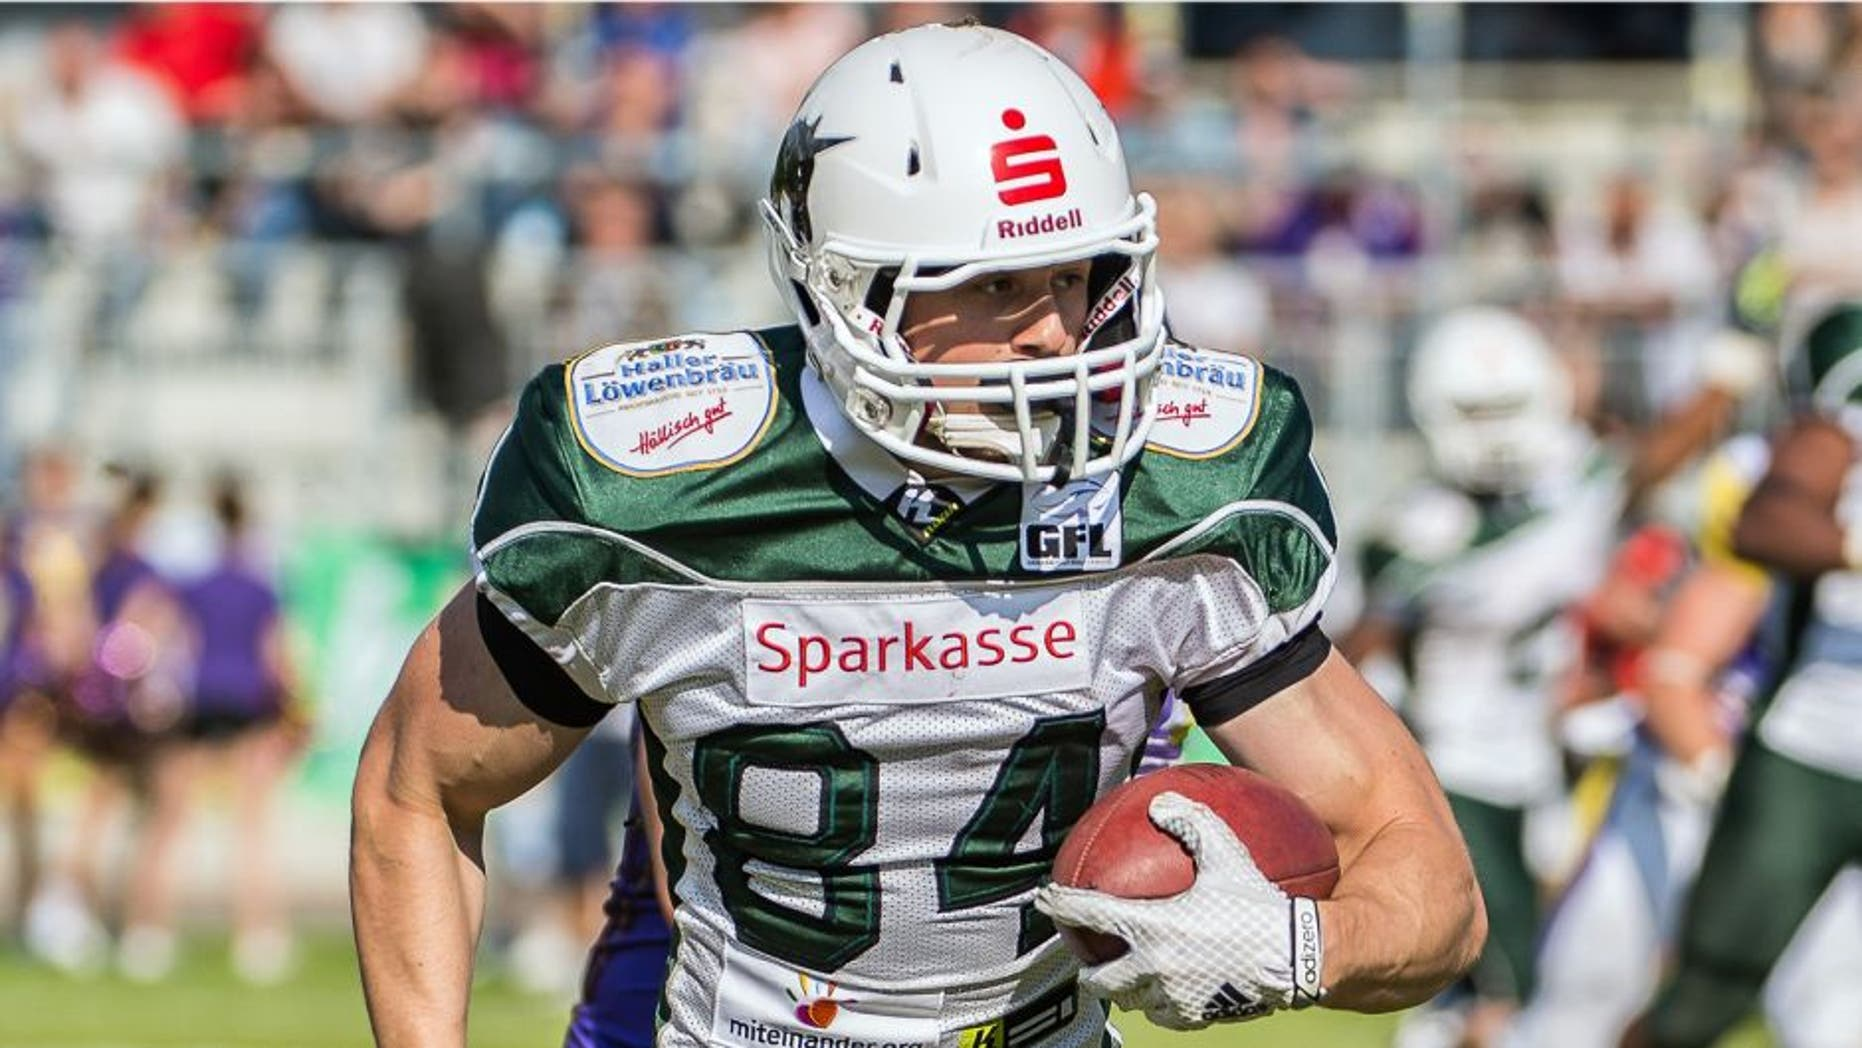 Moritz Boehringer, Wide Receiver of Schwaebisch Hall Unicorns, during a match between Schwaebisch Hall Unicorns and Vienna Vikings in Vienna, Austria, 17 May 2015. With a 45:23 victory, the team qualified for the Eurobowl for the first time. Boehringer is said to have realistic chances to be drafted during the draft in Chicago on Saturday. The 22-year-old would be the first German from the German Football League to receive a contract. Photo by: Manfred Löffler/picture-alliance/dpa/AP Images